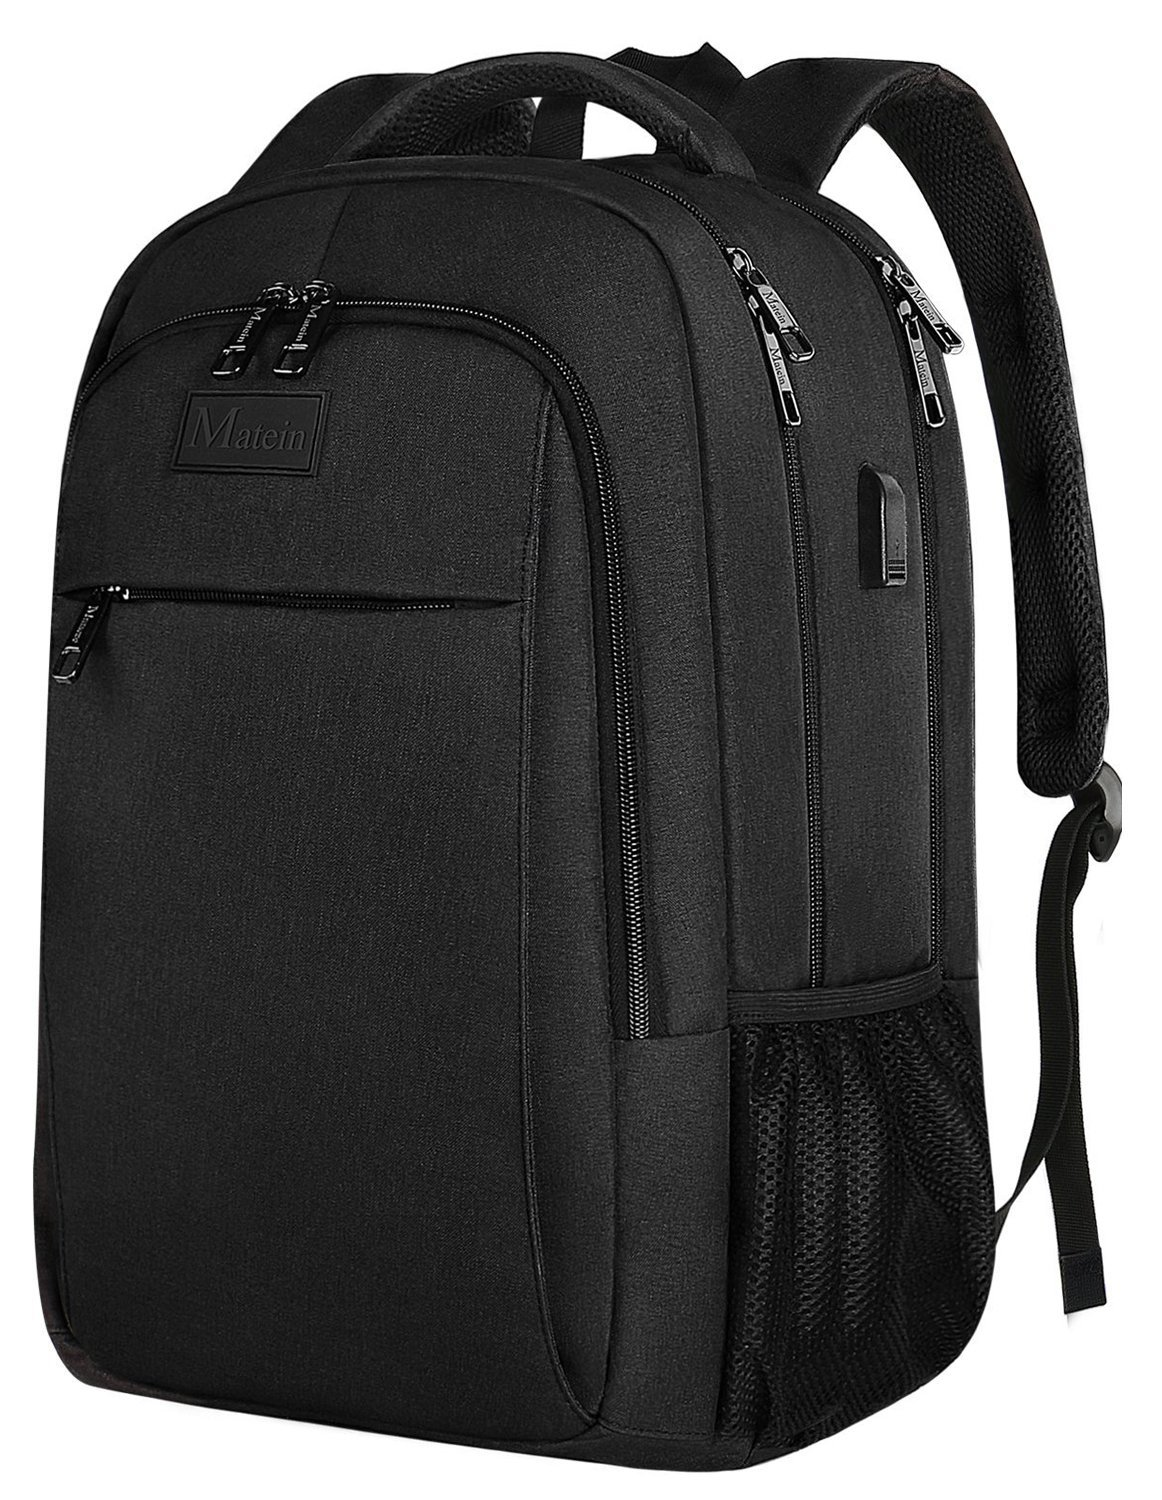 68aeb78b66 Matein Anti Theft Laptop Backpack Review - Slant